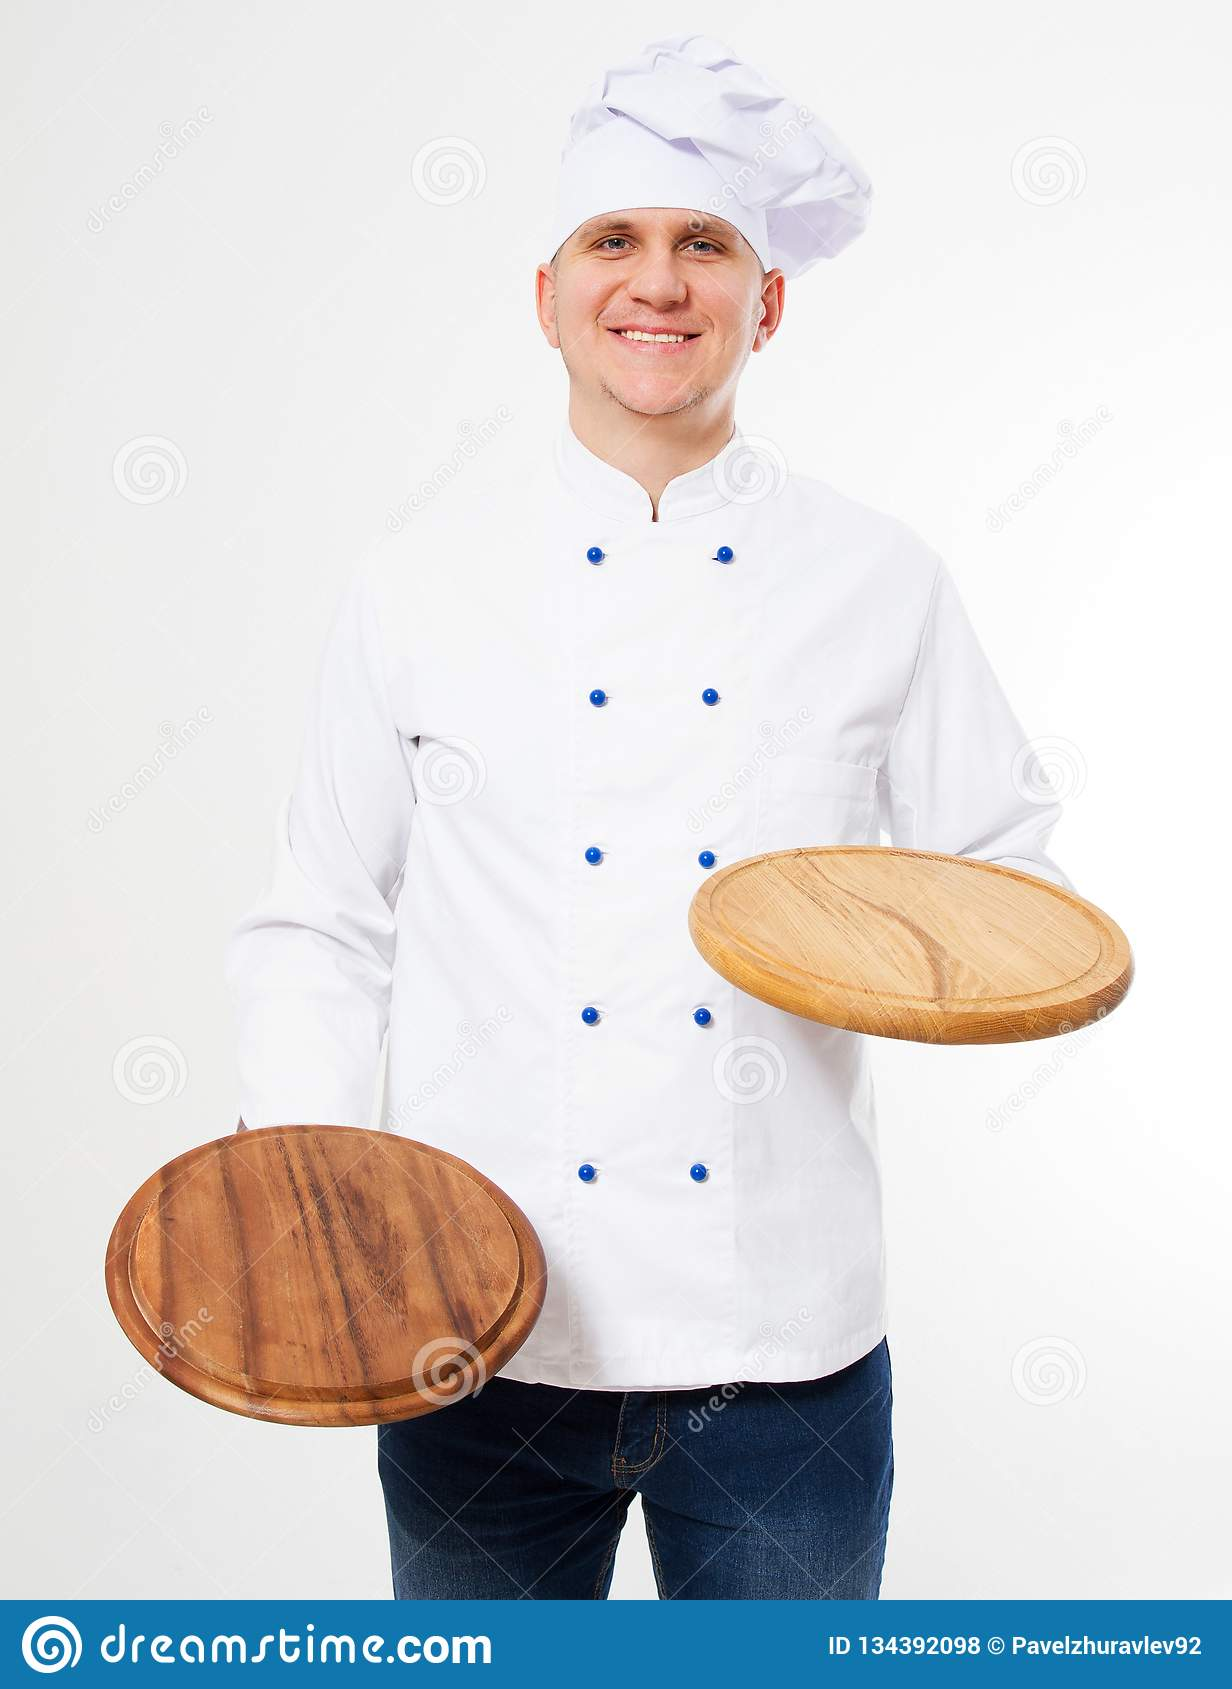 Smiling chef holding empty pizza boards isolated on white background